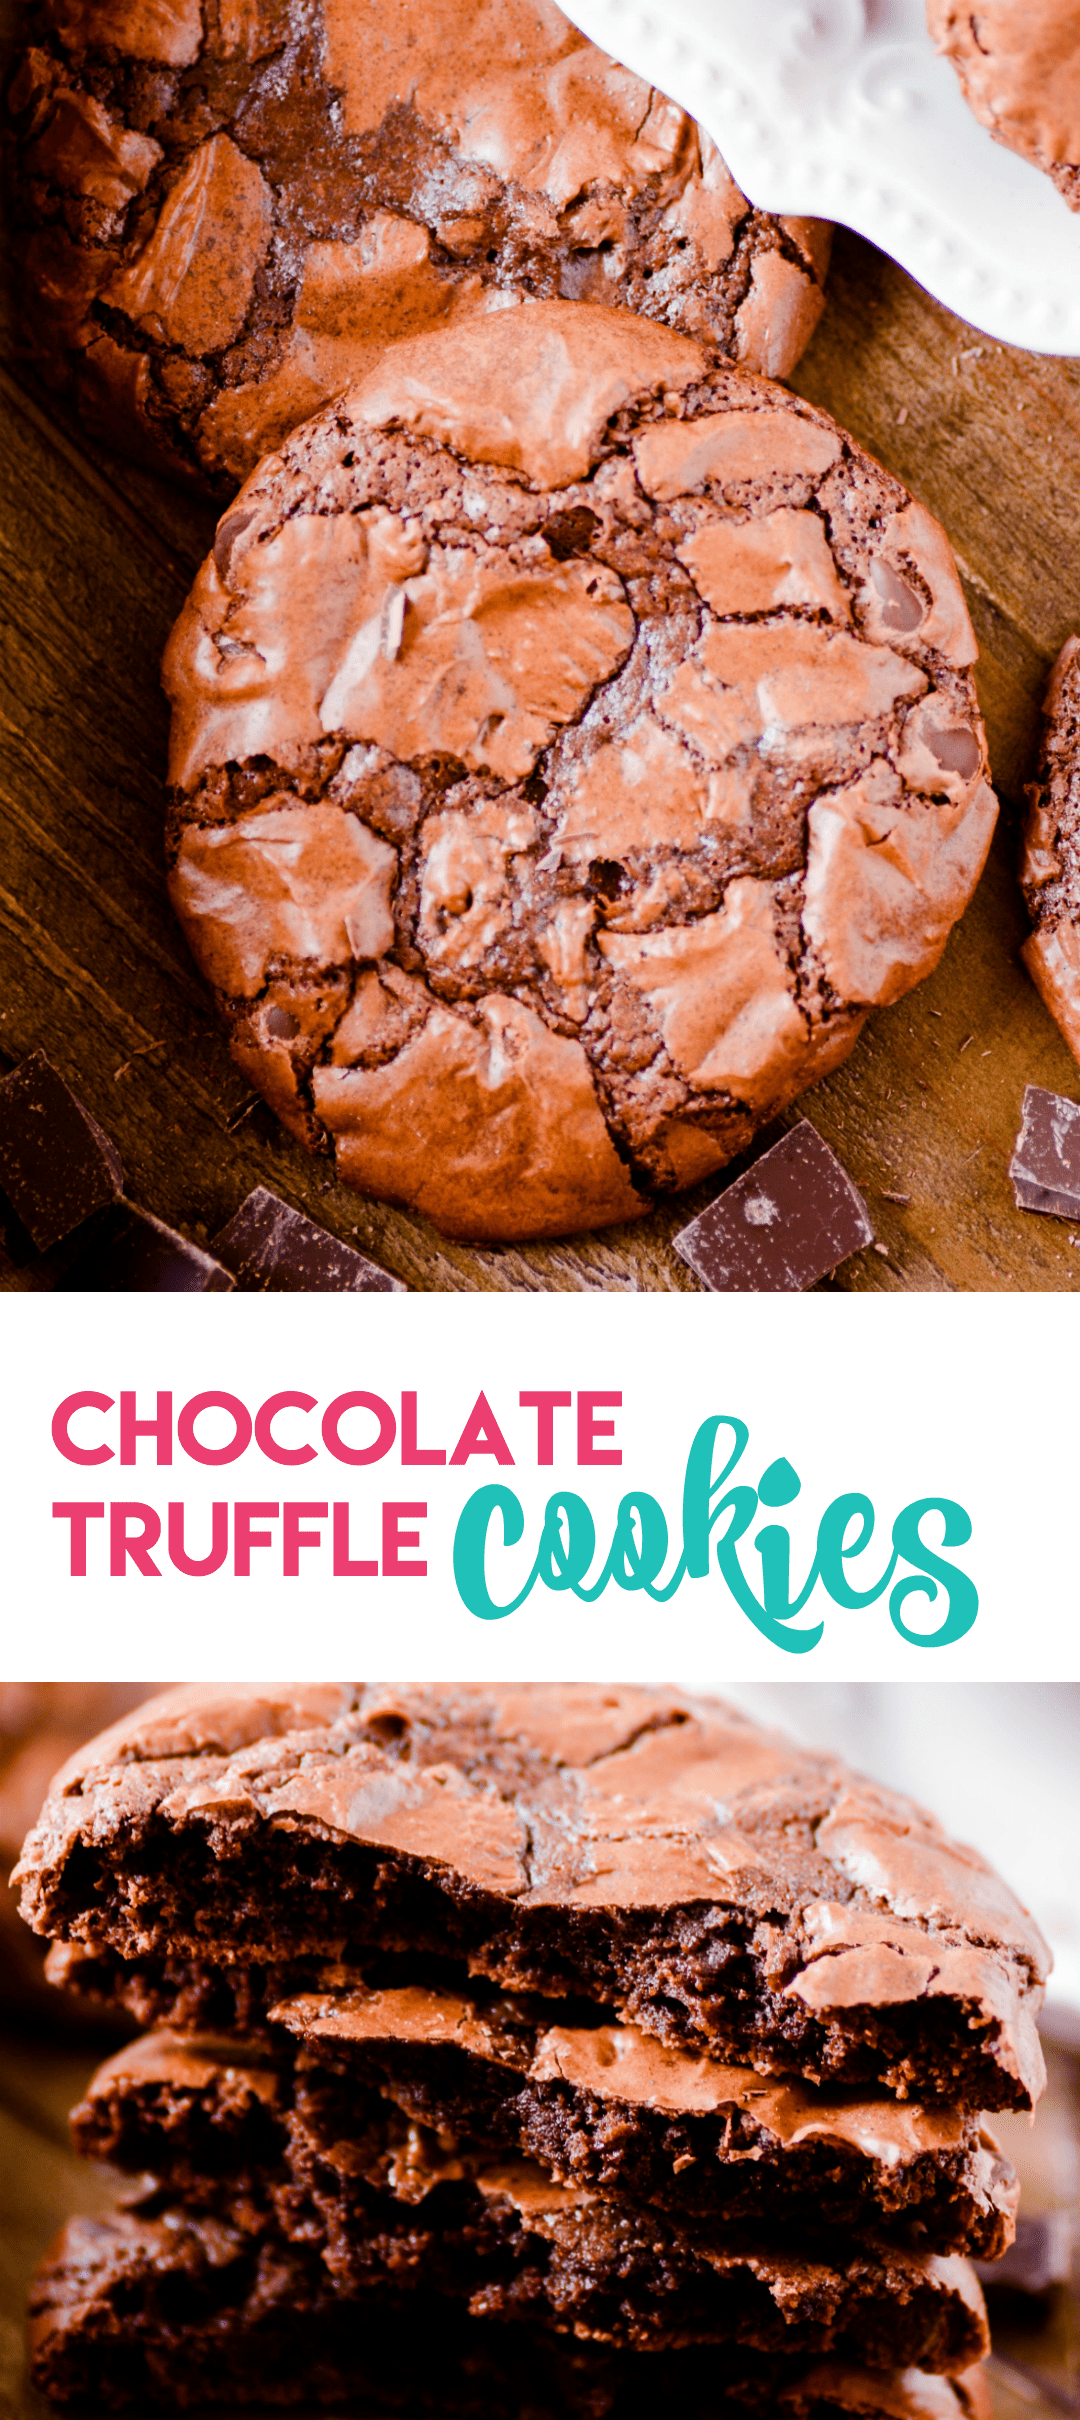 Chocolate cookies with a soft fudgy middle, chewy edges, and a crackly brownie-like top.